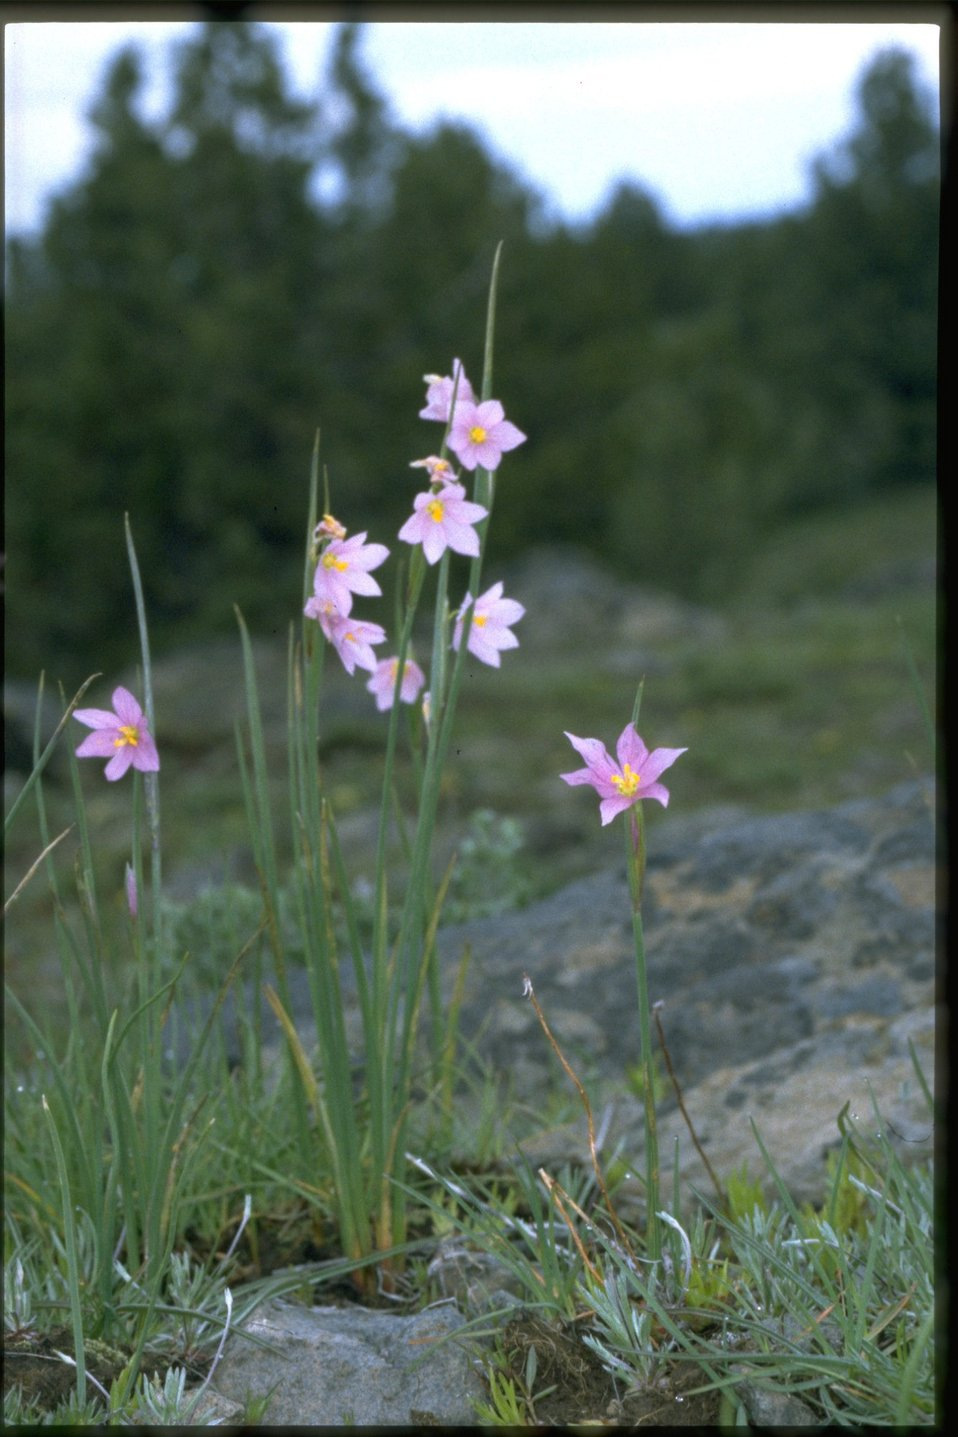 Farshot of Grass Widow, Sisyrinchium Douglasii, wildflowers.